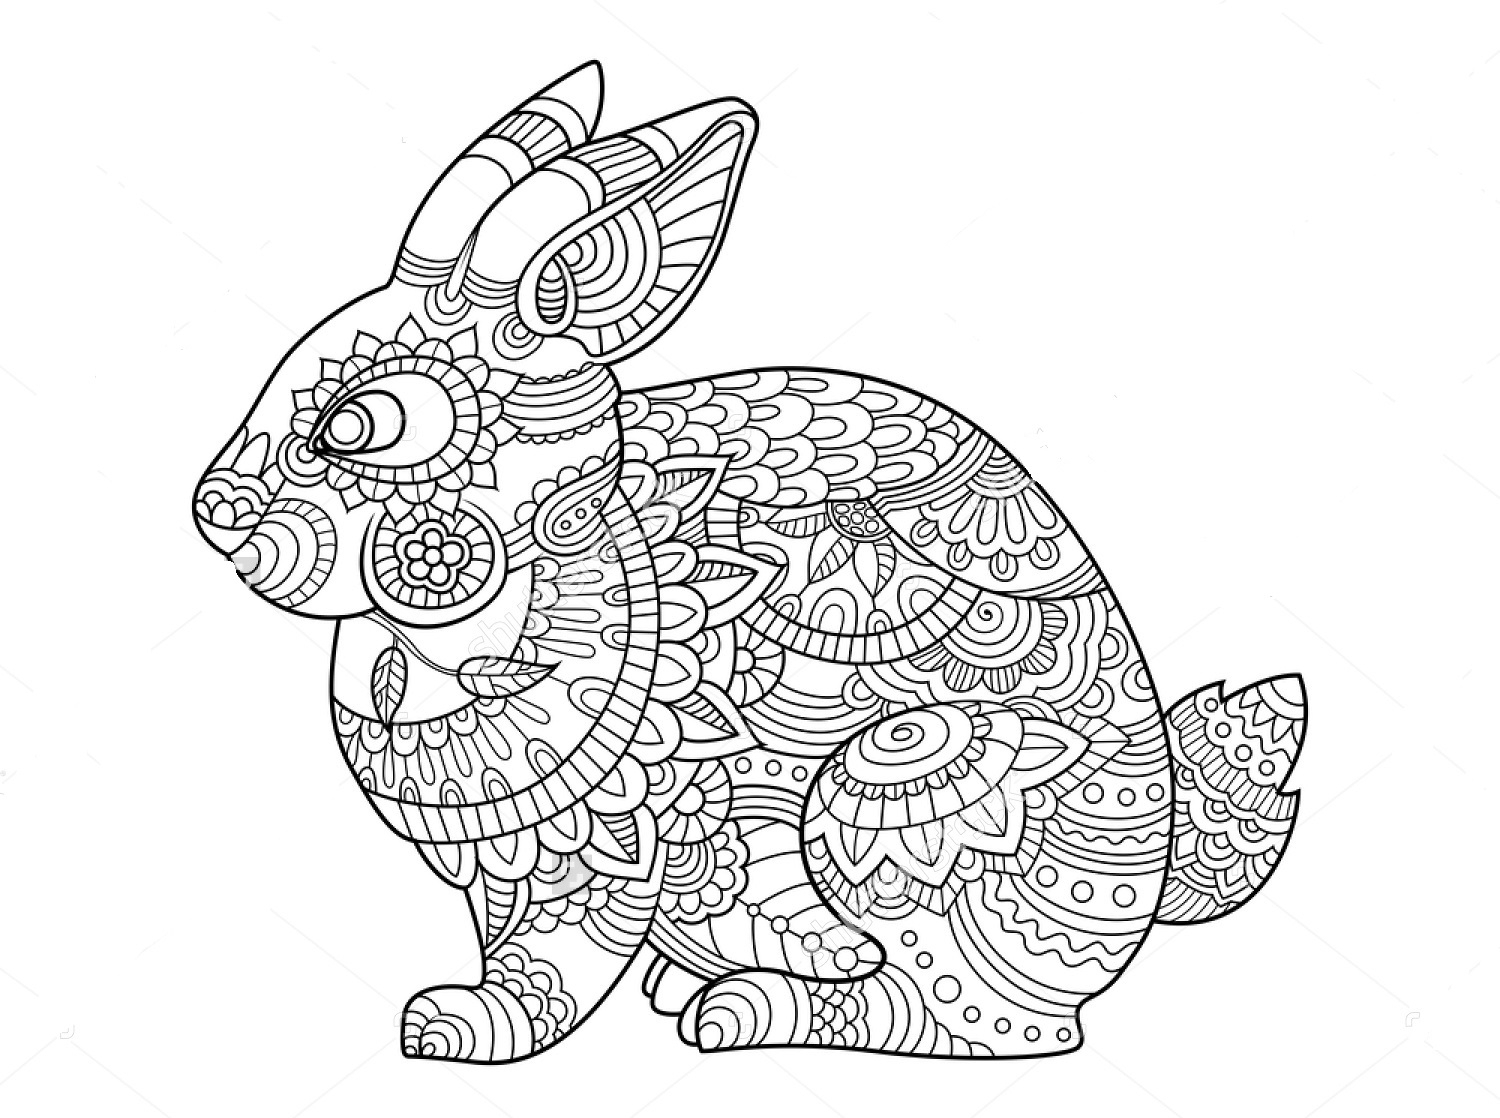 coloring pages of bunny rabbits coloring pages of a rabbit printable free coloring sheets rabbits of coloring pages bunny